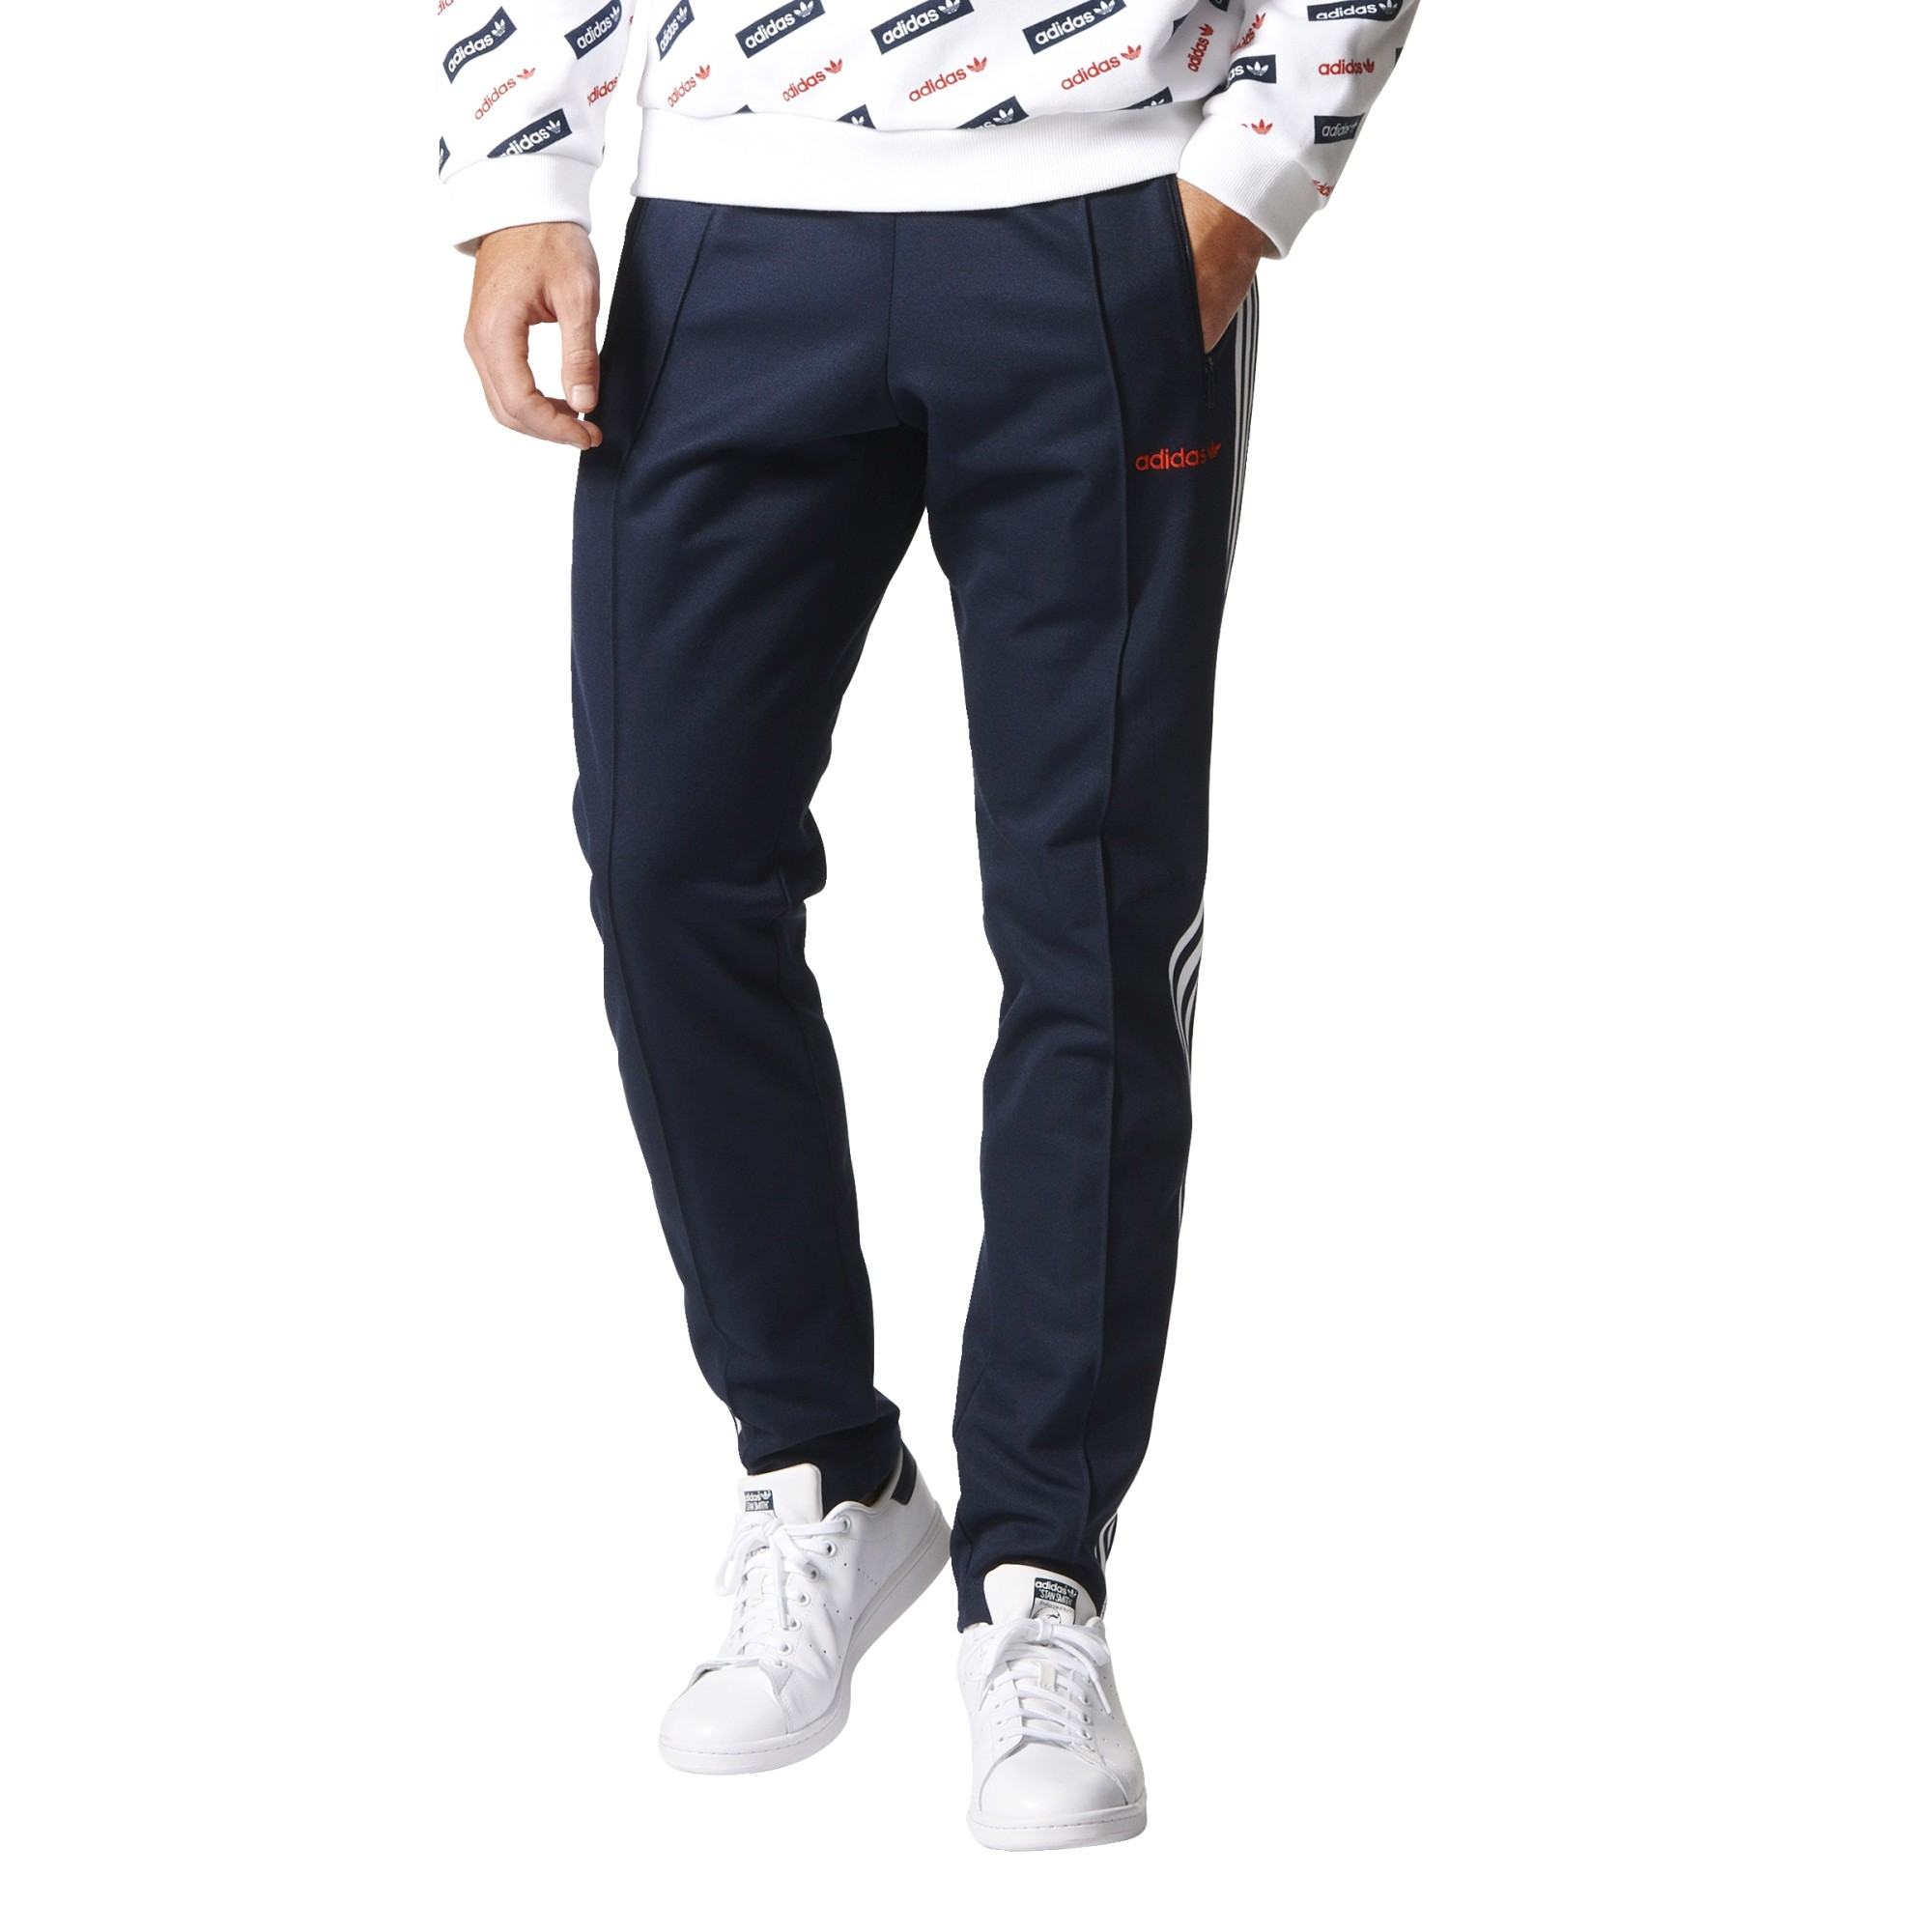 623440d385e Adidas Originals Pantalon de survêtement Block Homme Legend Ink